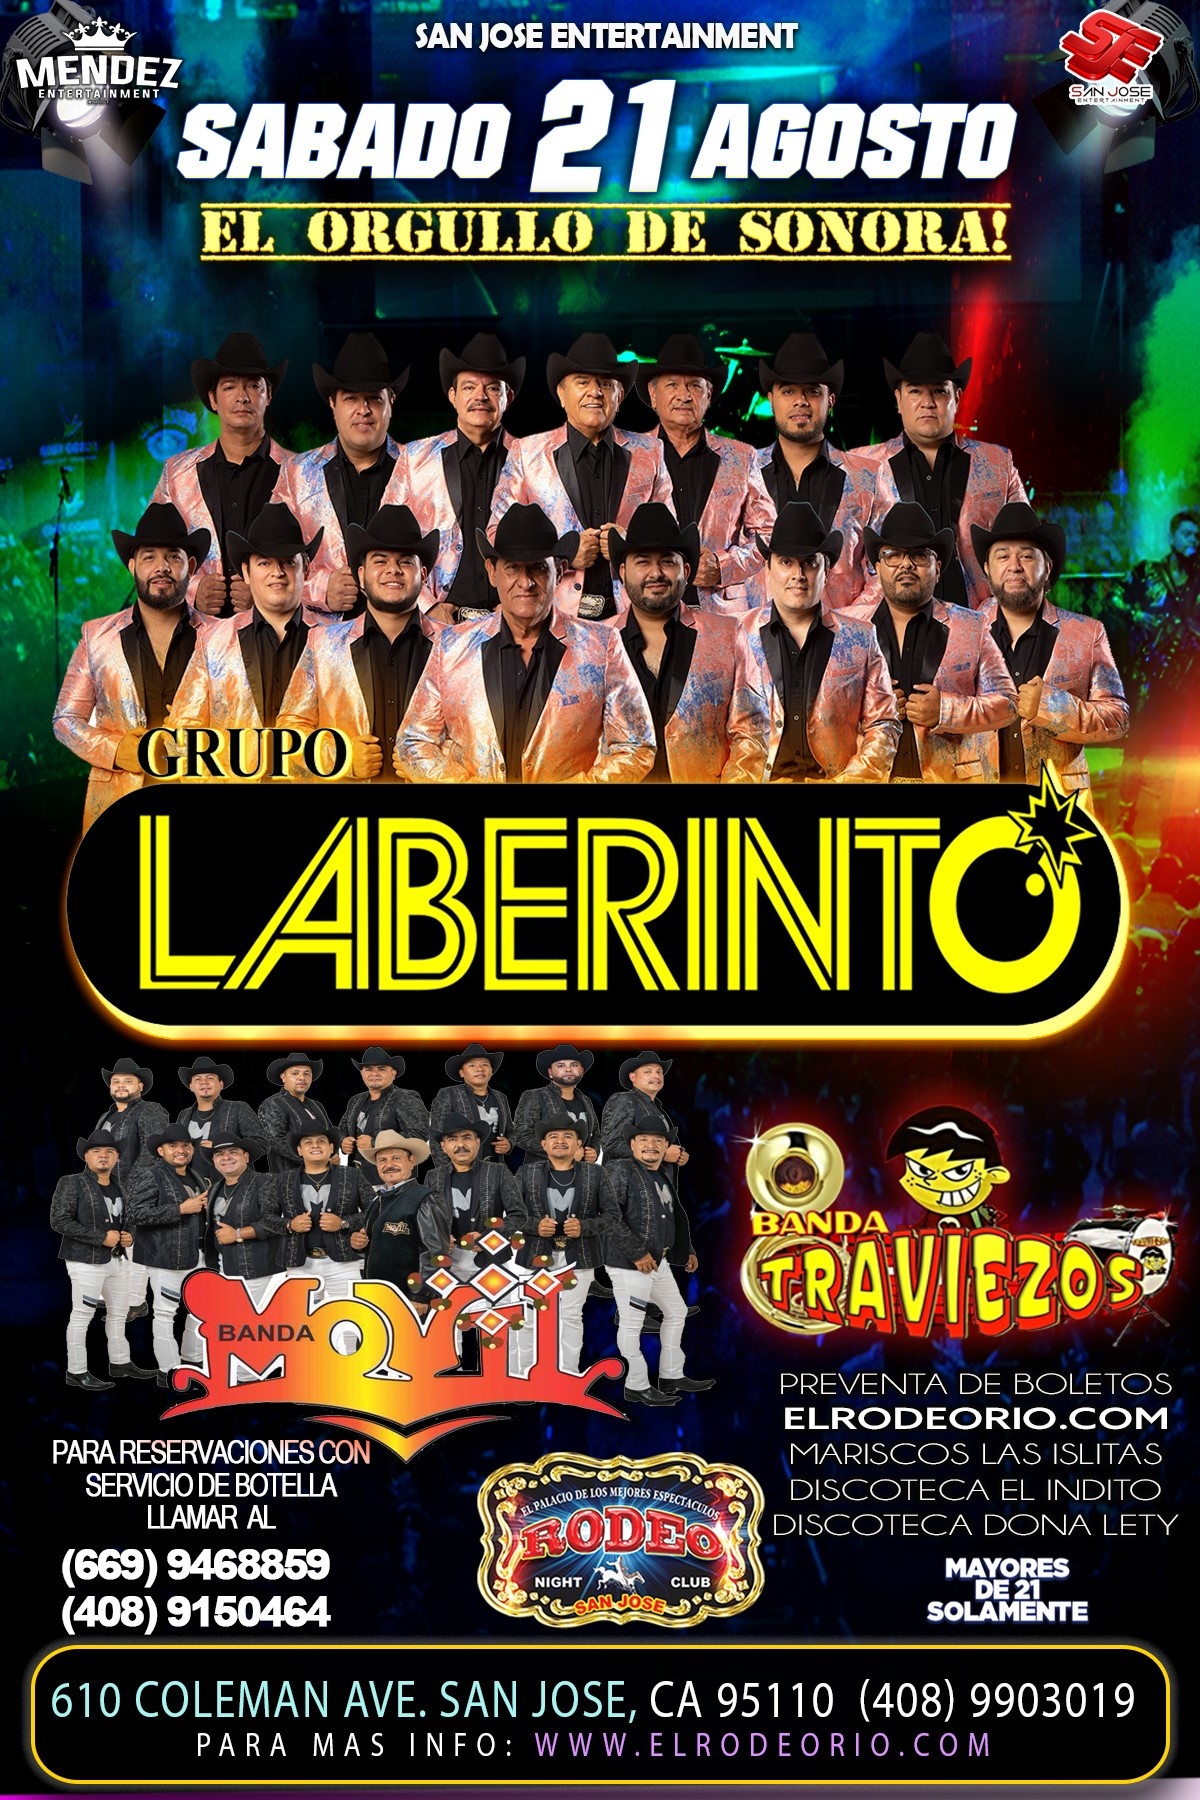 Grupo Laberinto y Banda Movil  on Aug 21, 21:00@Club Rodeo - Buy tickets and Get information on elrodeorio.com sanjoseentertainment